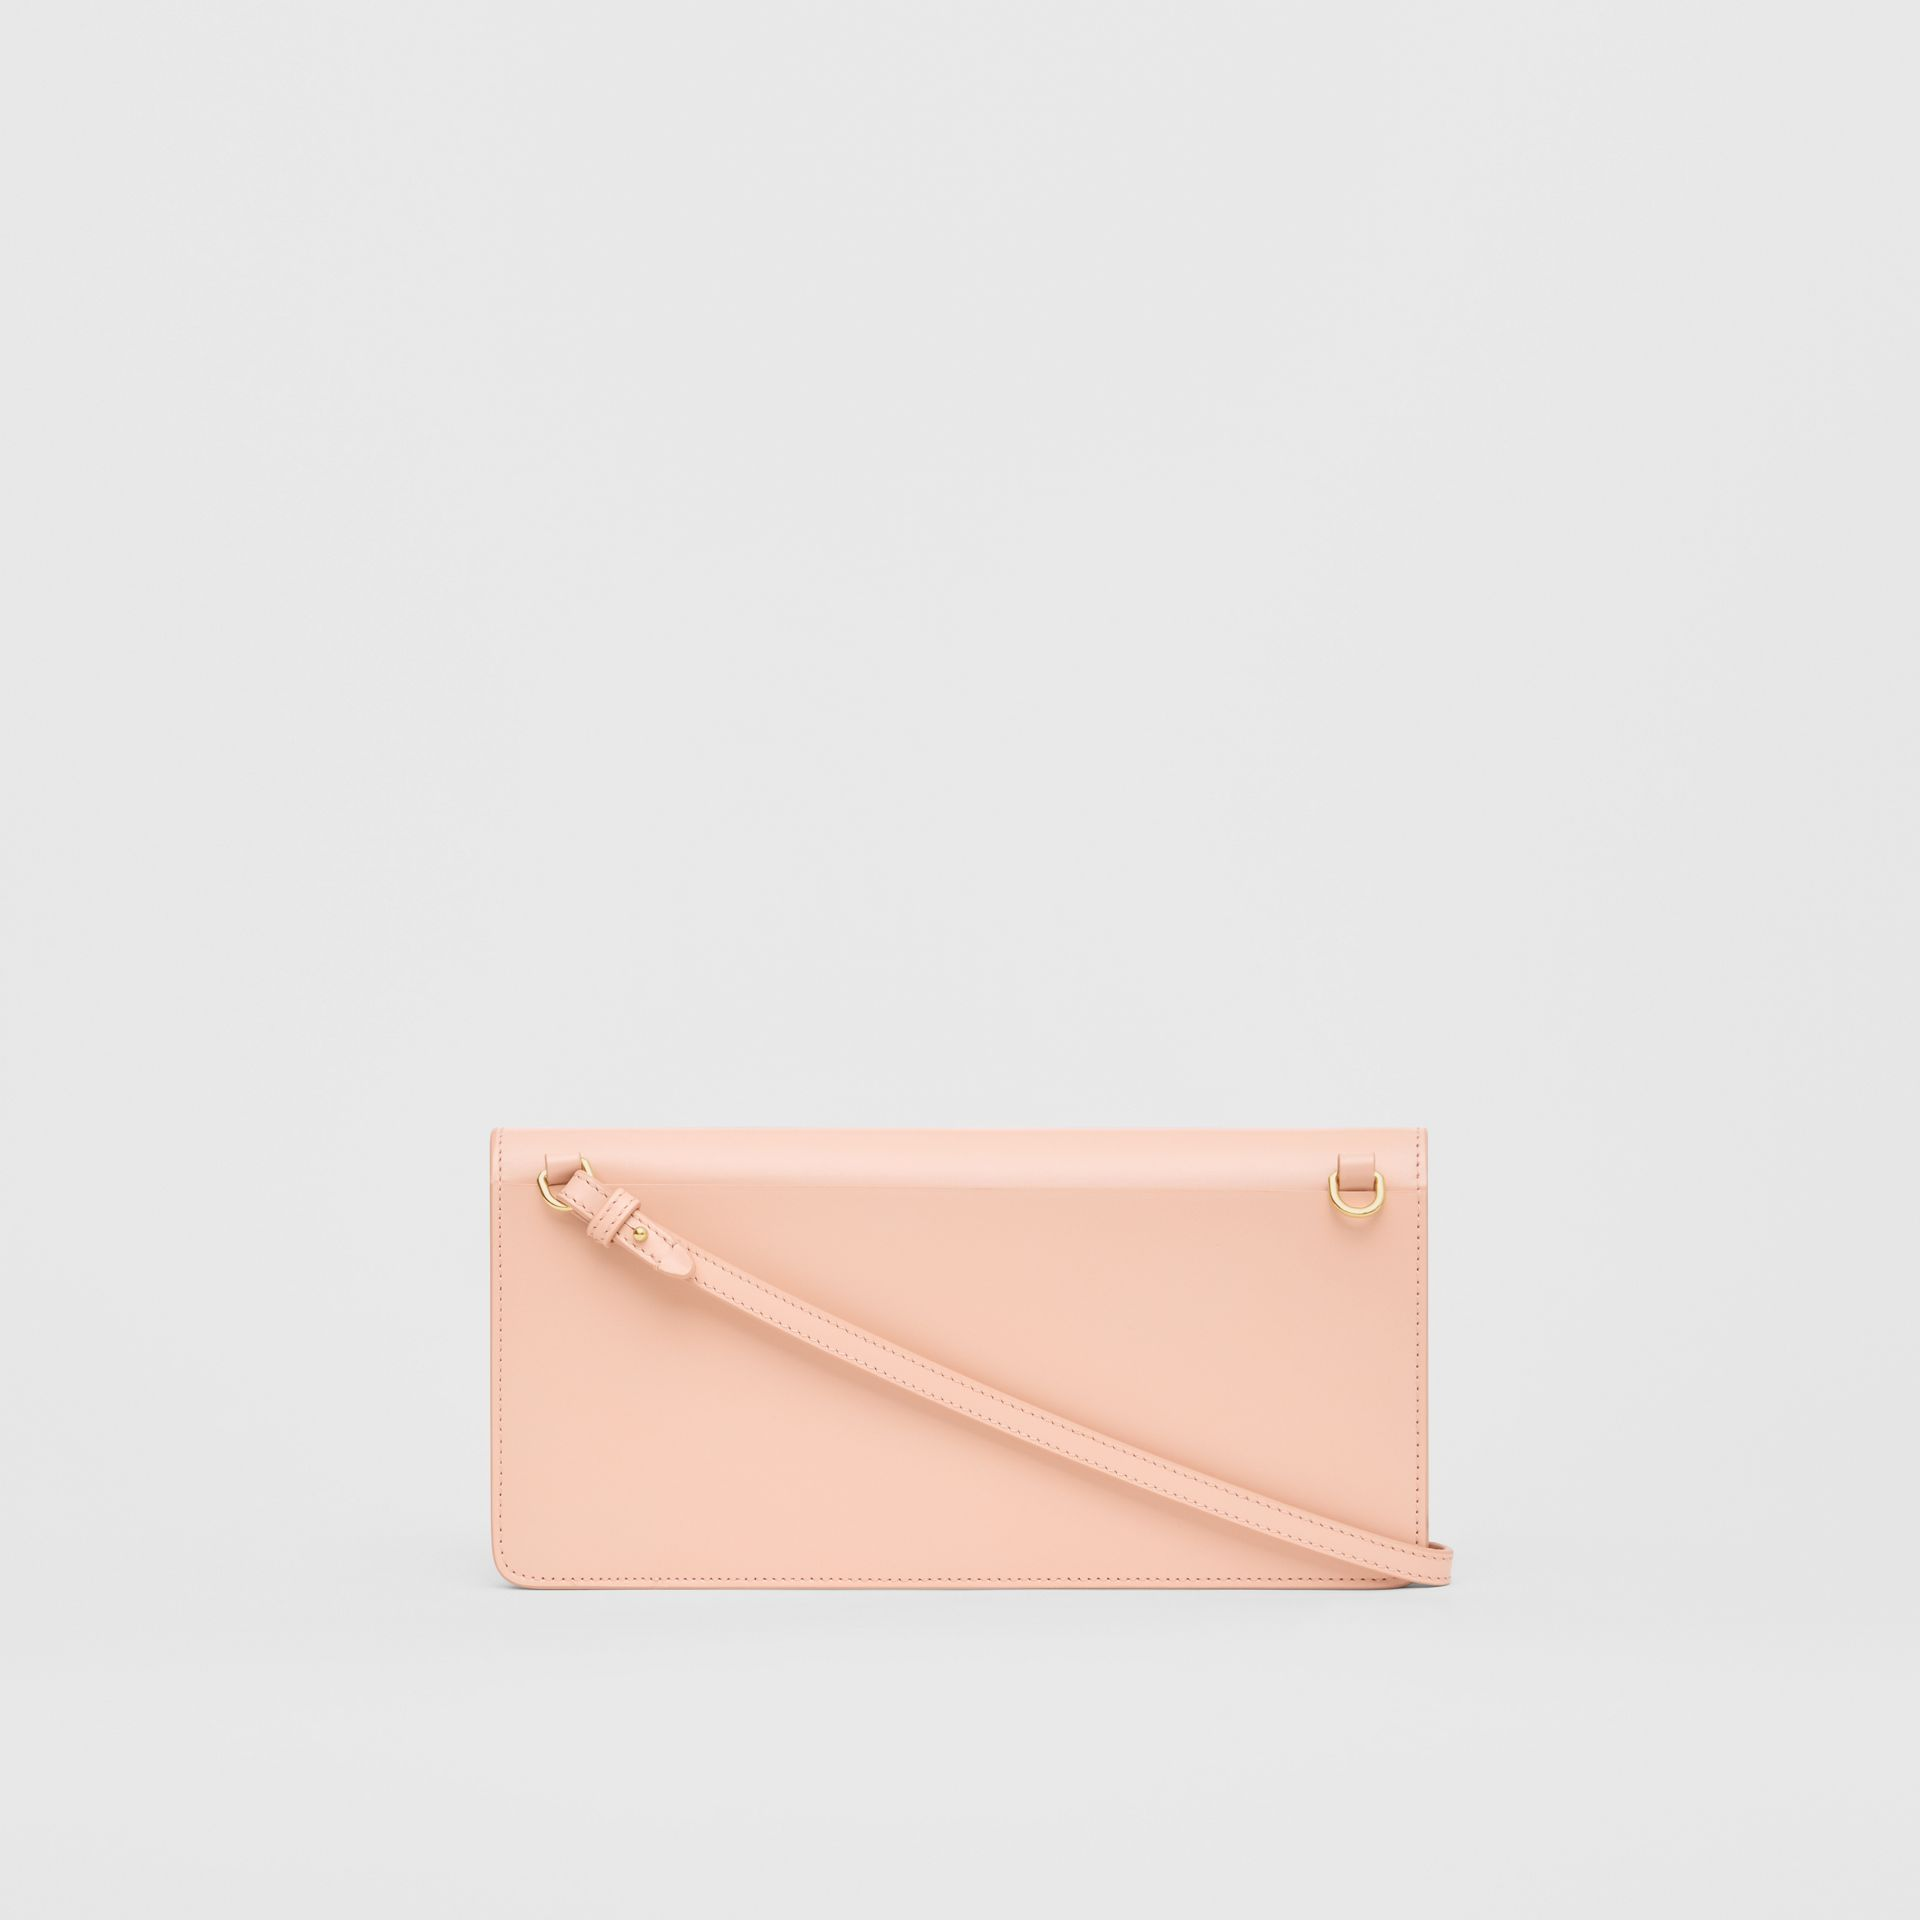 Horseferry Print Leather Bag with Detachable Strap in Blush Pink - Women | Burberry Canada - gallery image 7